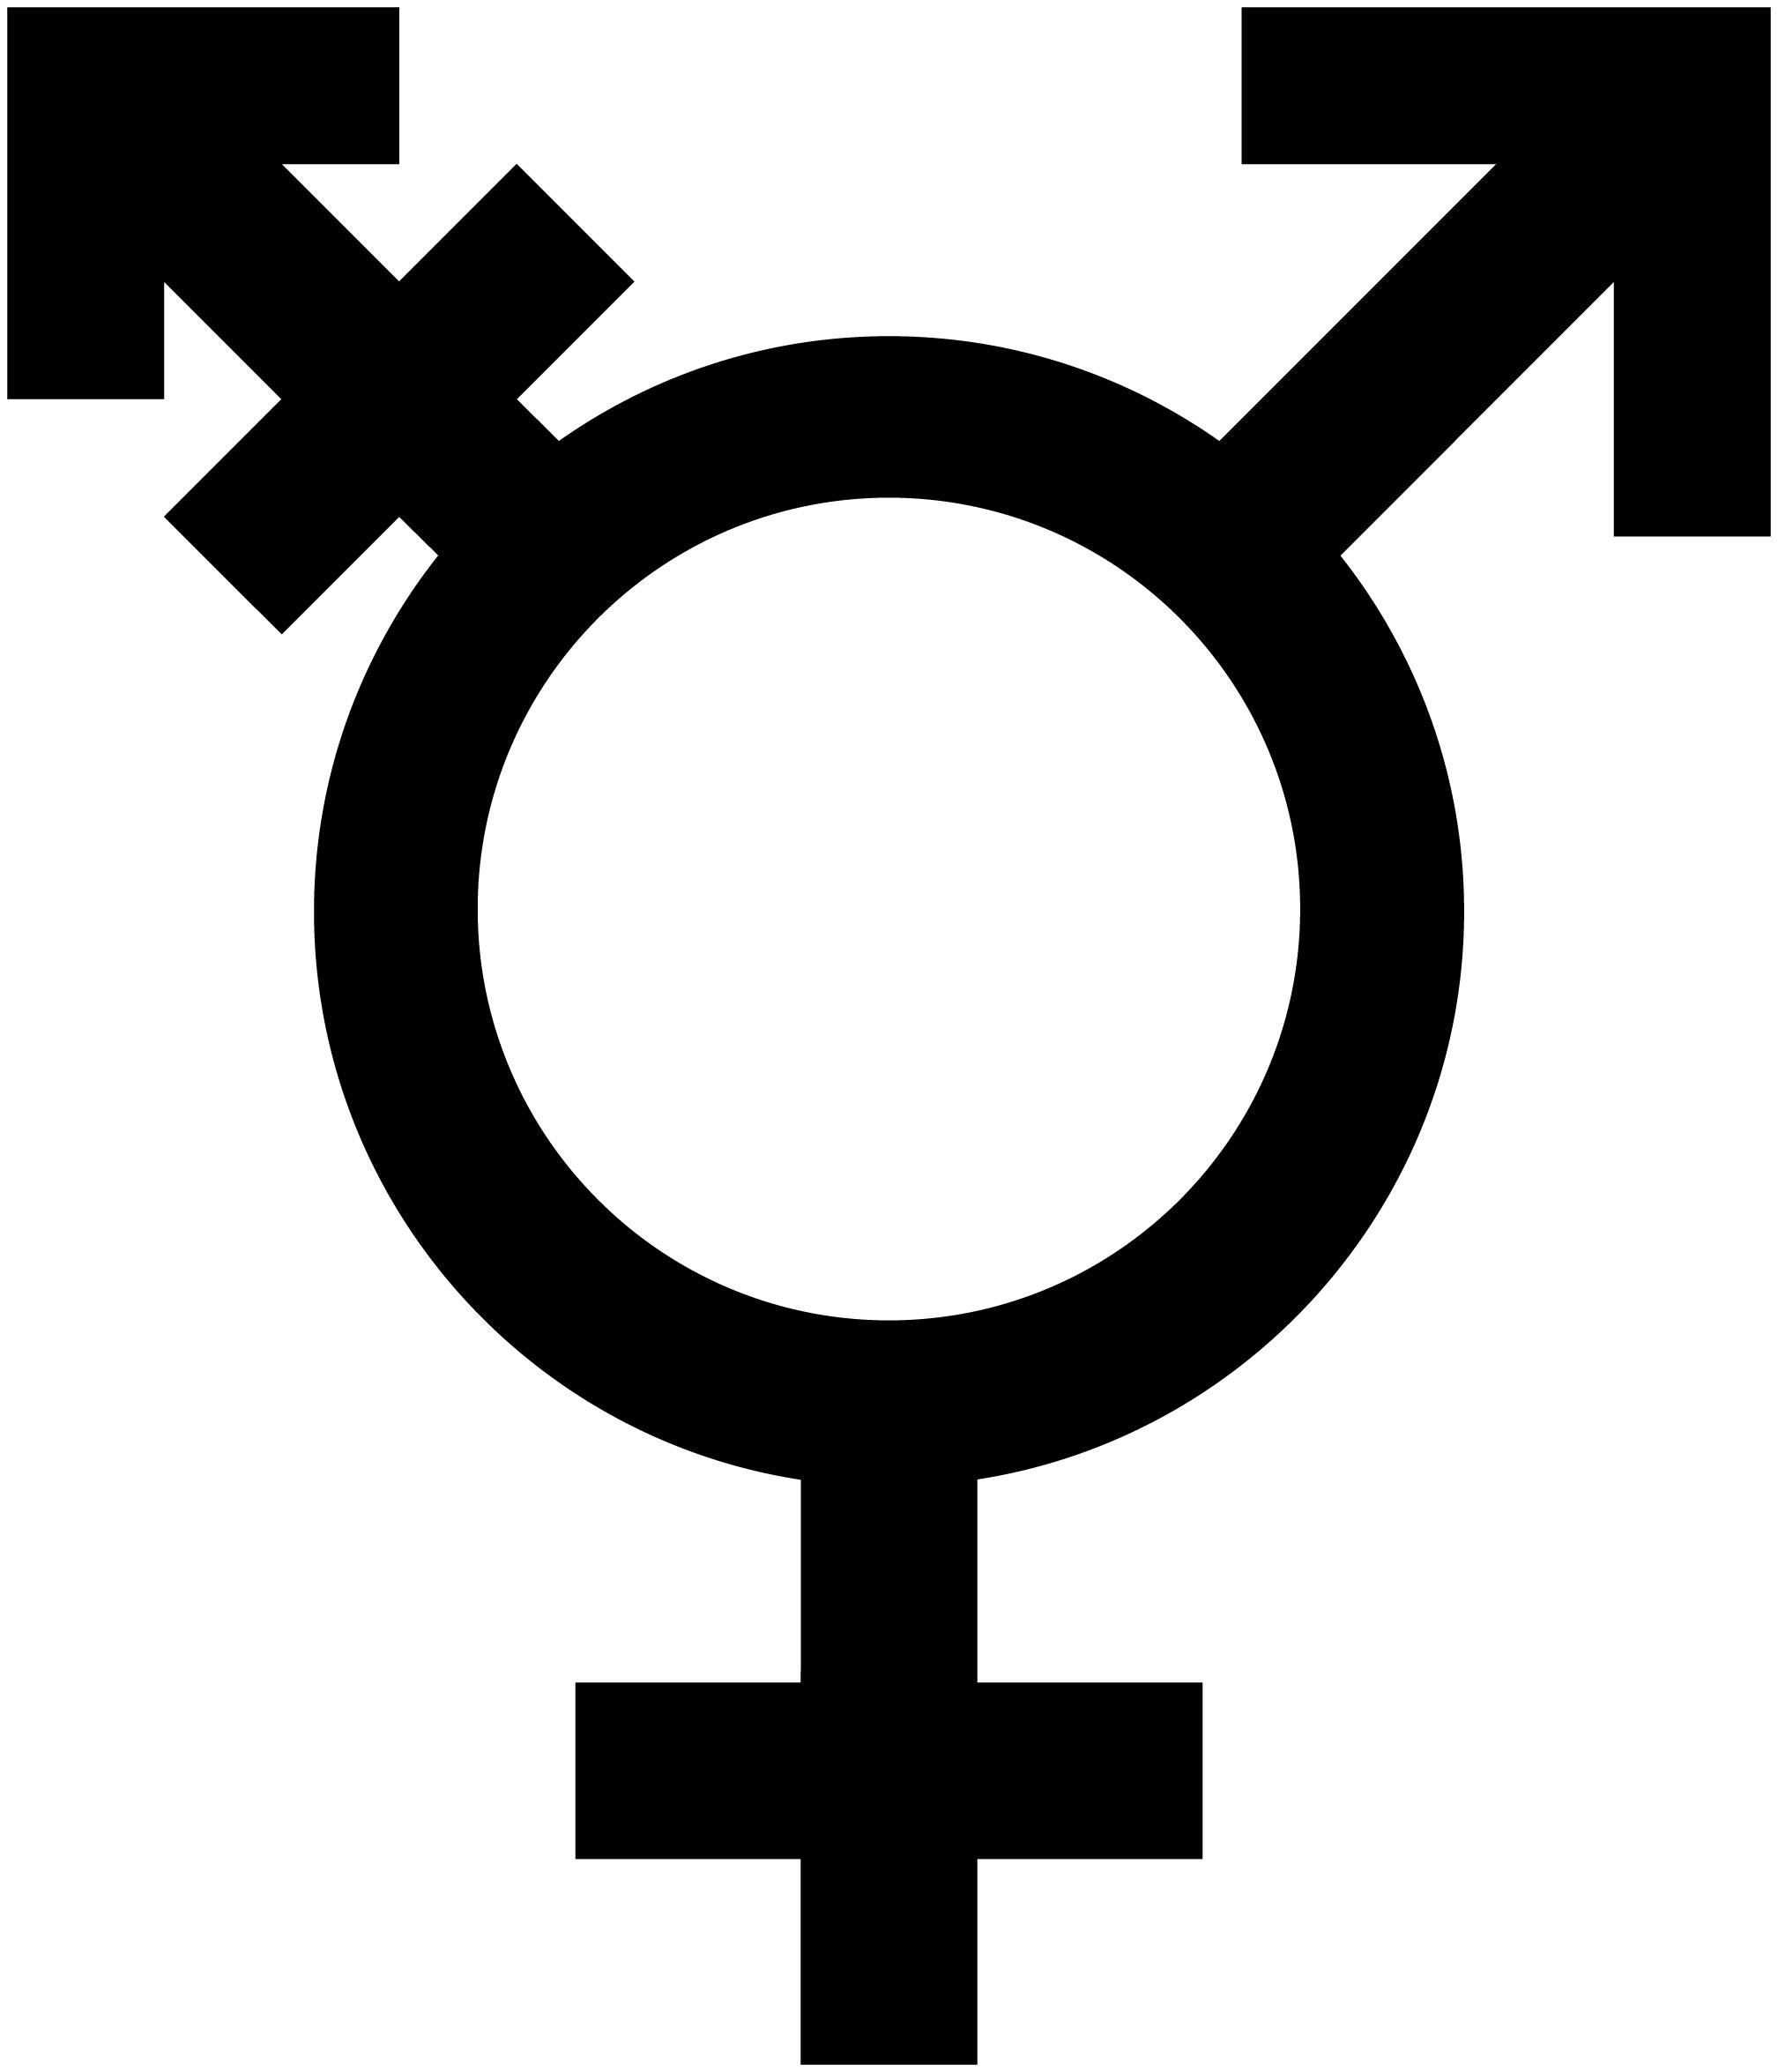 Intersex and transgender people need reservations advocates report - CLPR's policy brief provides framework for providing reservations to Transgender and Intersex persons